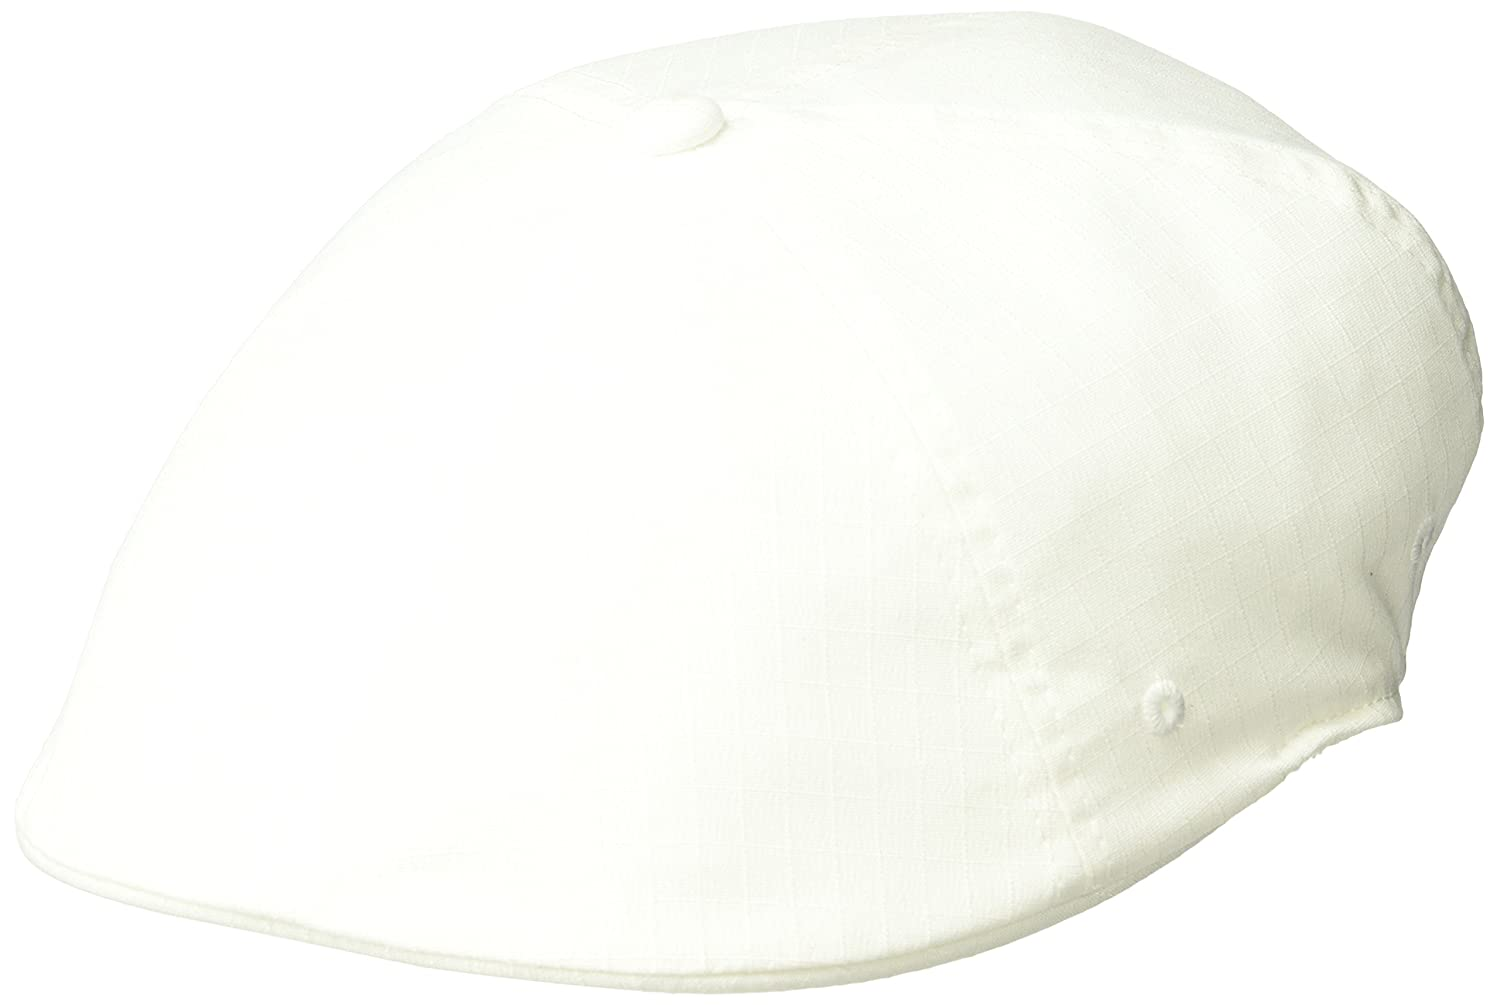 09b379a8a04 Kangol Men s Ripstop 504 Ivy Cap at Amazon Men s Clothing store